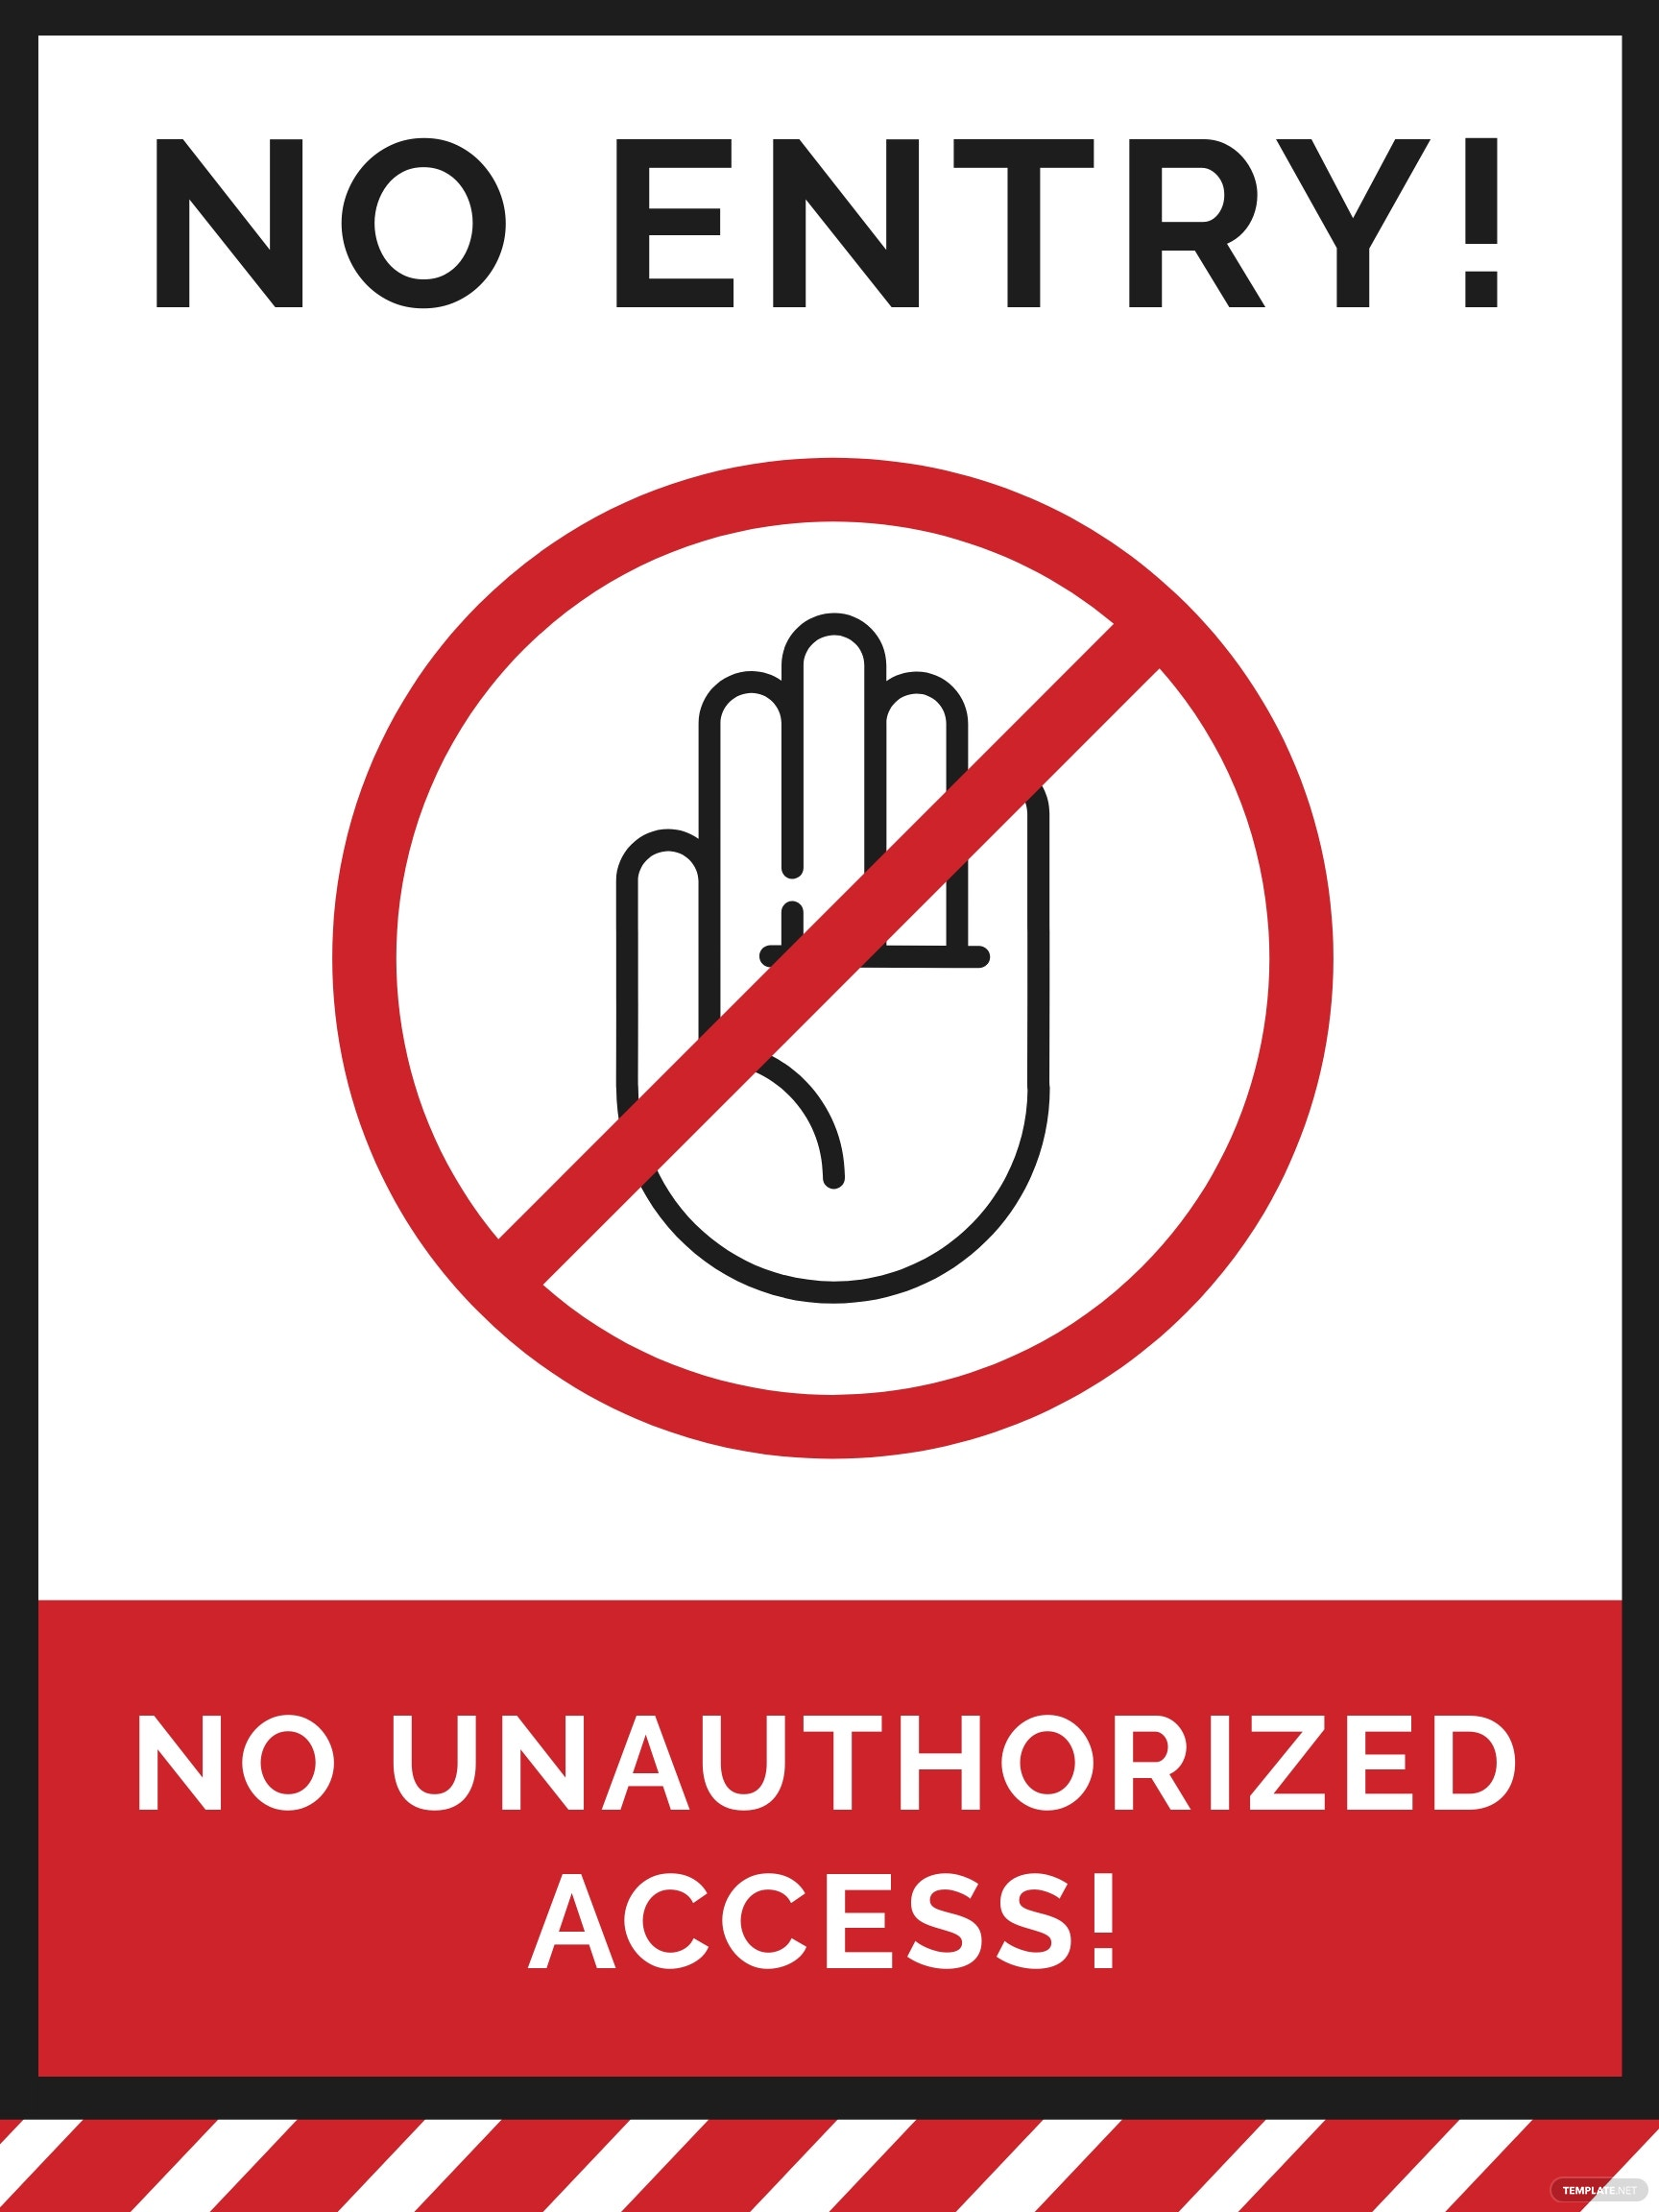 No Unauthorized Access Sign Template